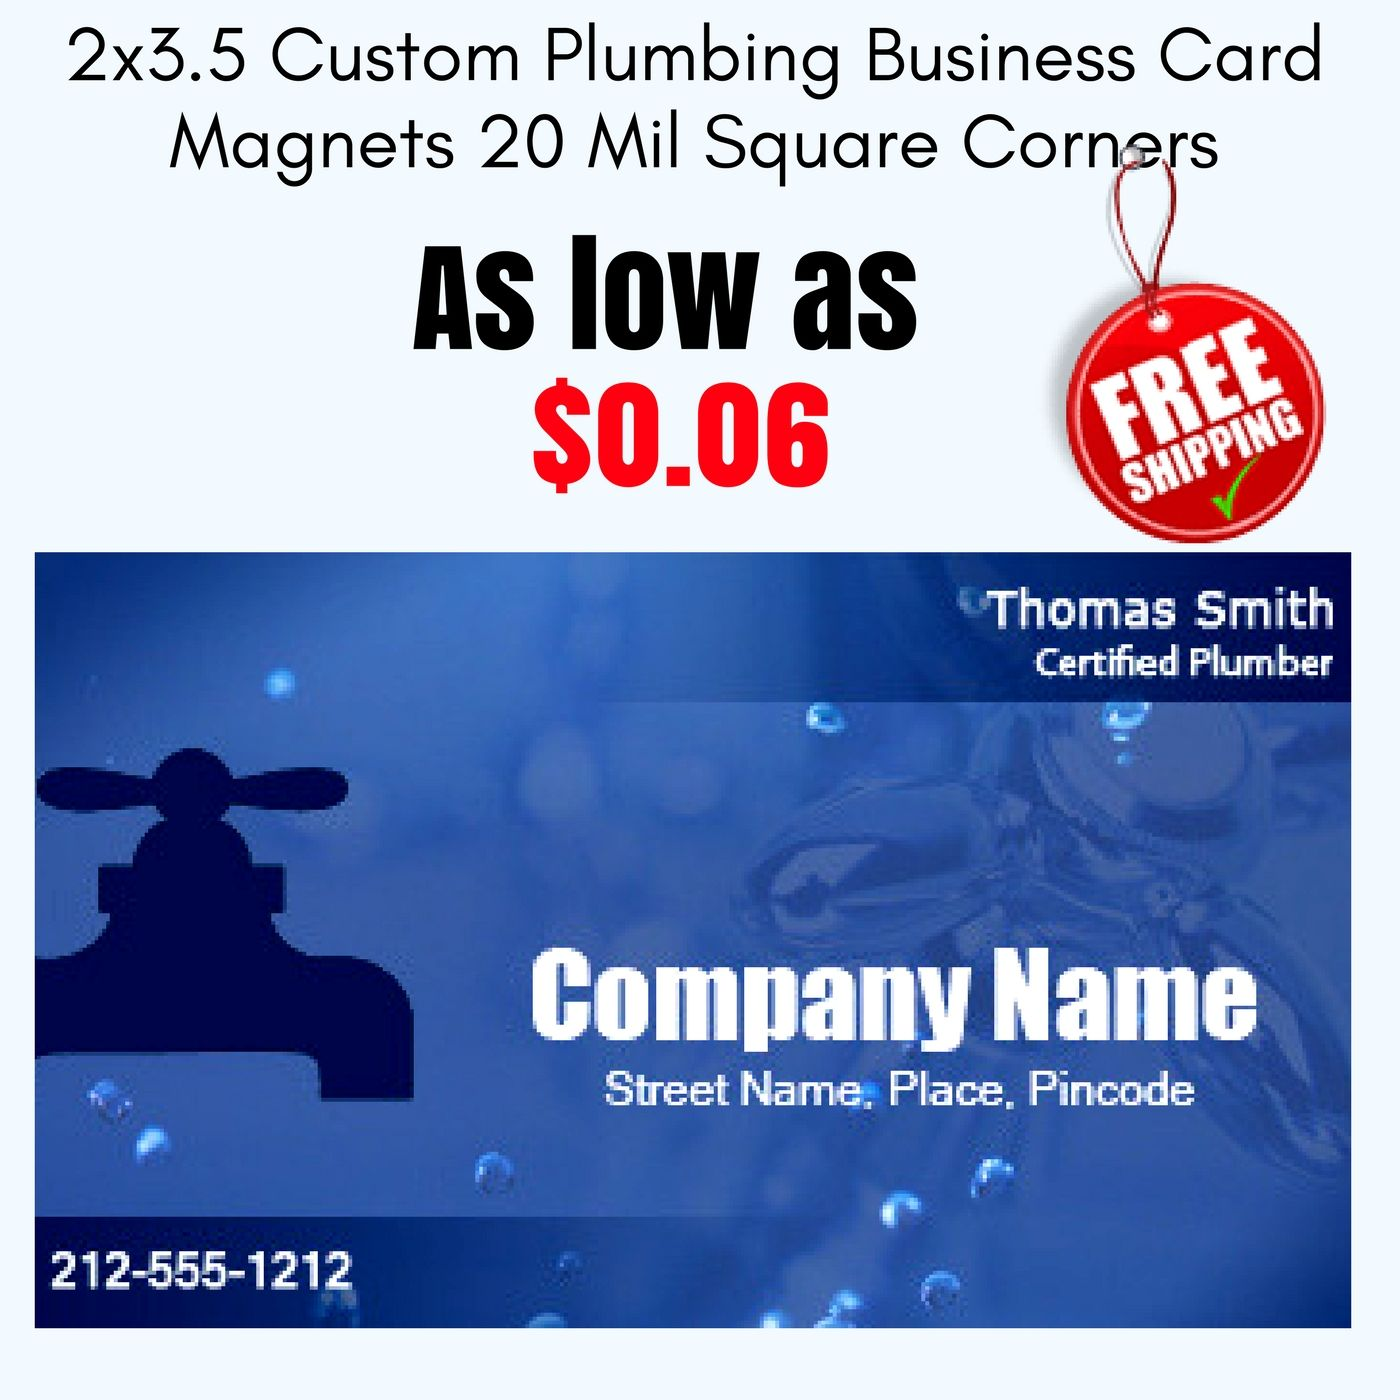 2x35 custom plumbing business card magnets 20 mil square corners 2x35 custom plumbing business card magnets 20 mil square corners plumbing business card magnets home garden magnets shop by theme colourmoves